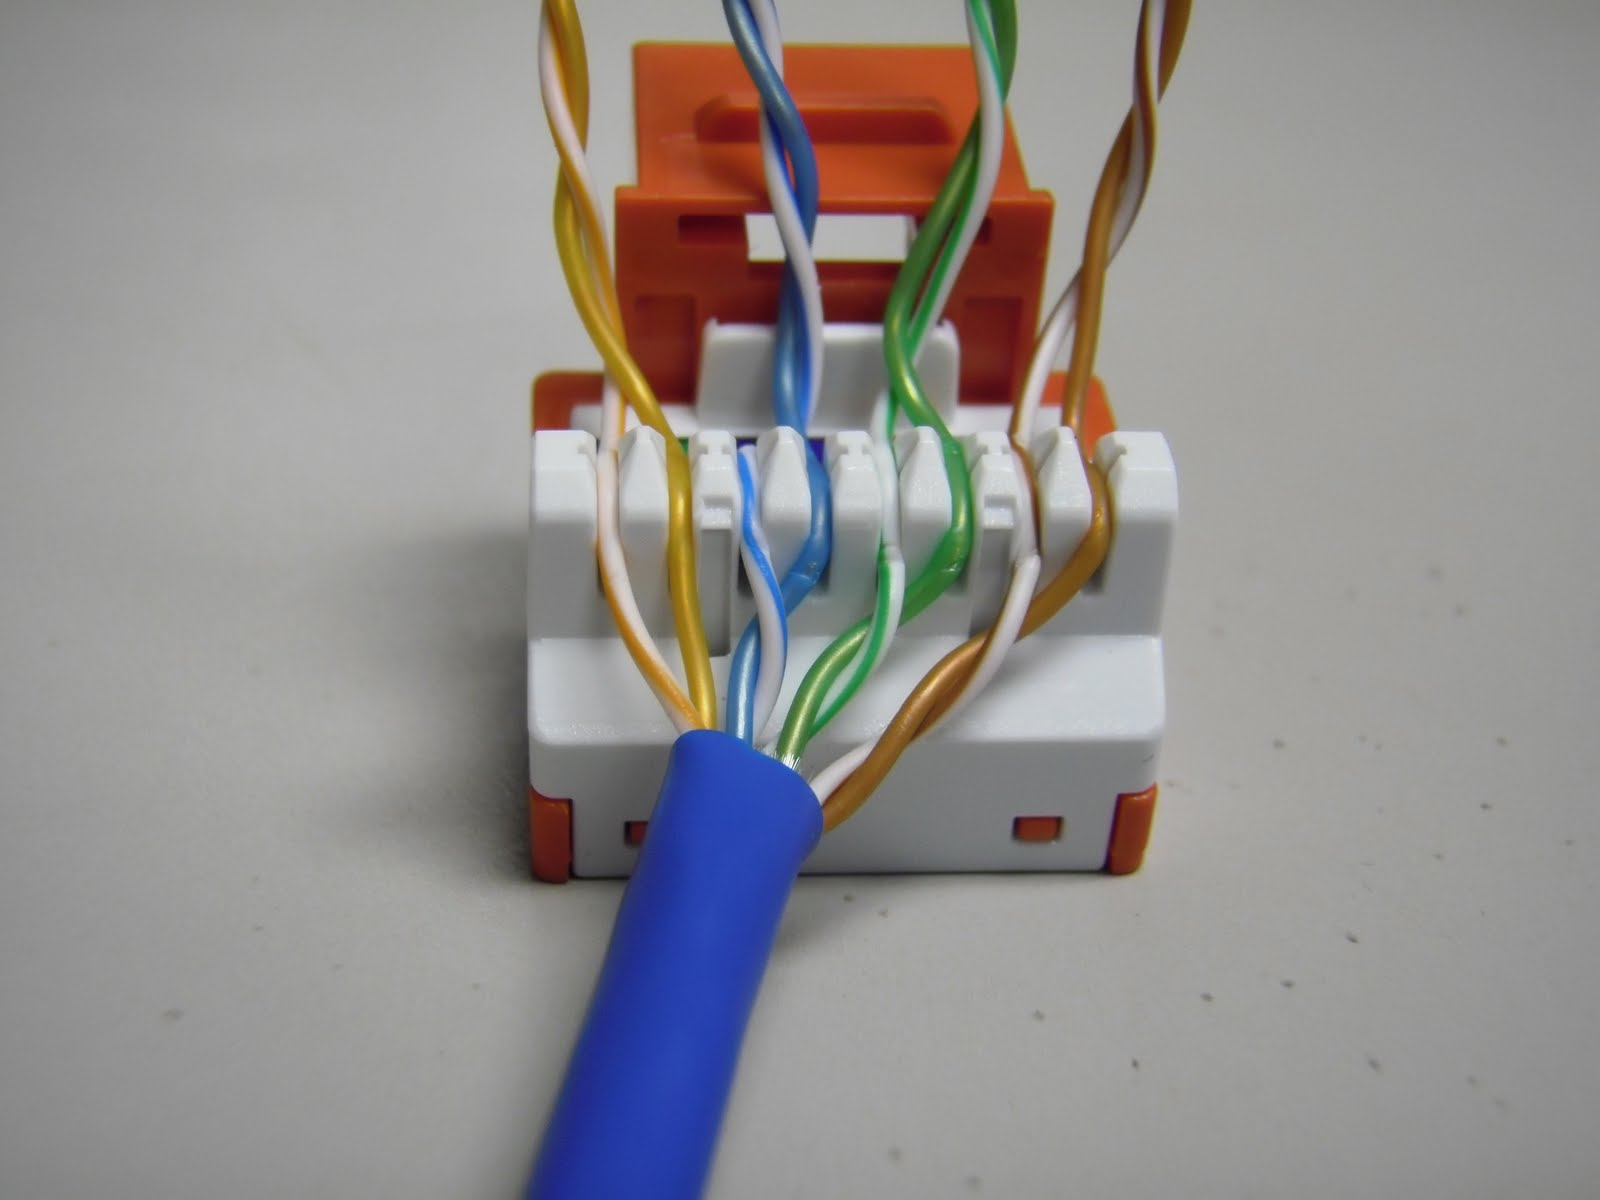 Keystone Jack Wiring Wiring Diagram Schemes Cat 5 Wiring Diagram Punch Down  Cat 5 Wiring Diagram